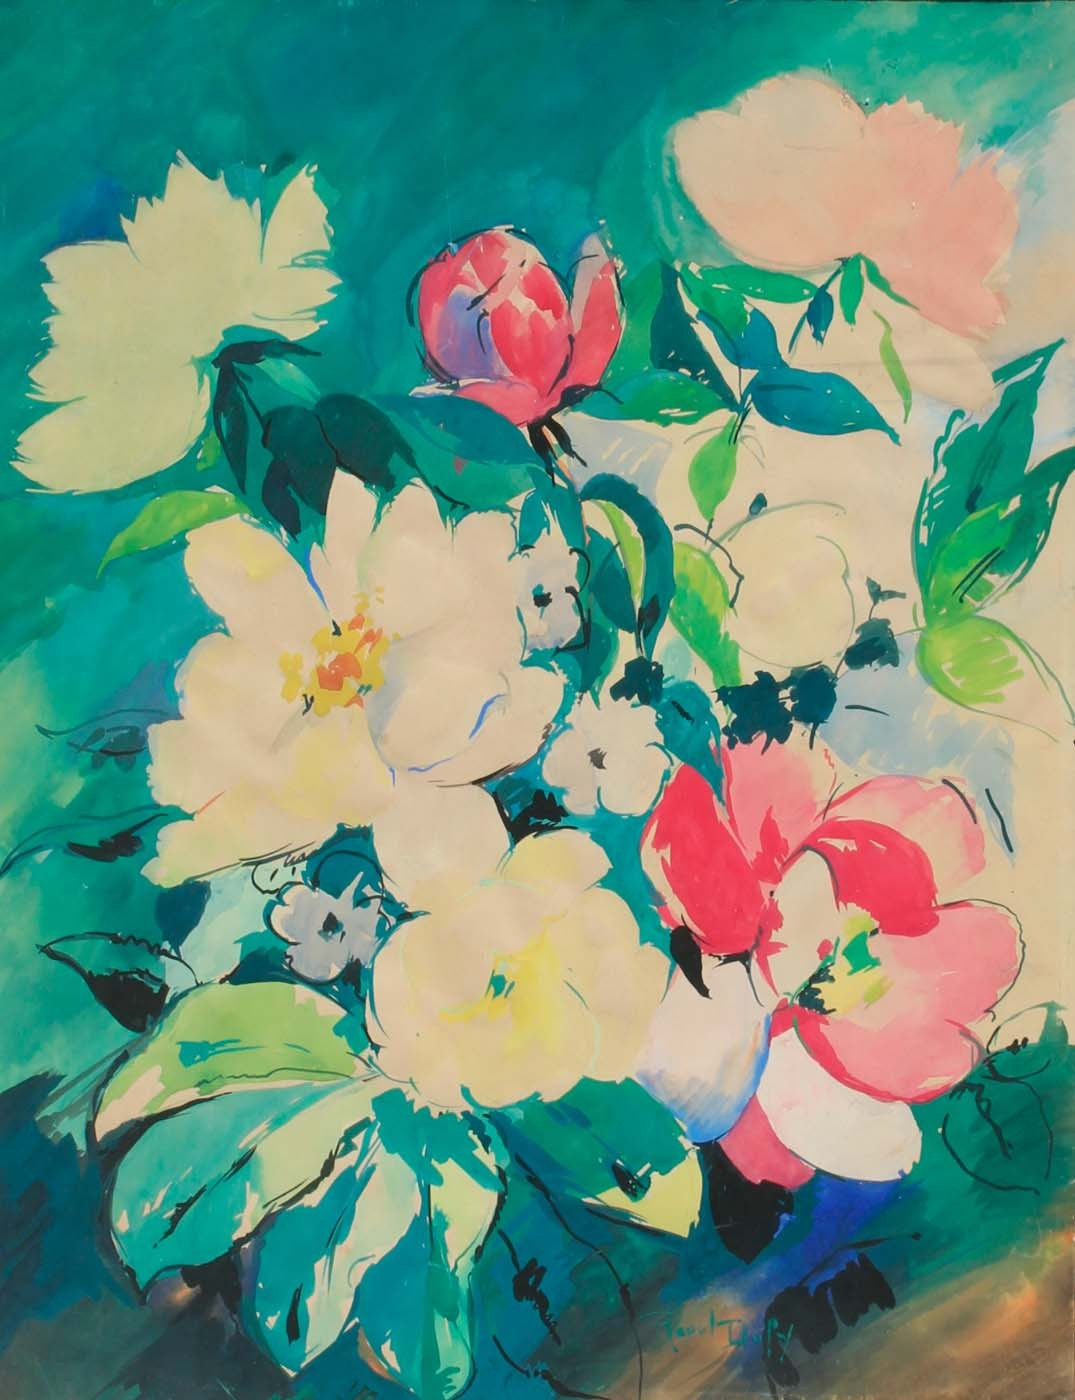 amare-habeo: Raoul Dufy (French, 1877-1953) Flowers, N/D Gouache on paper